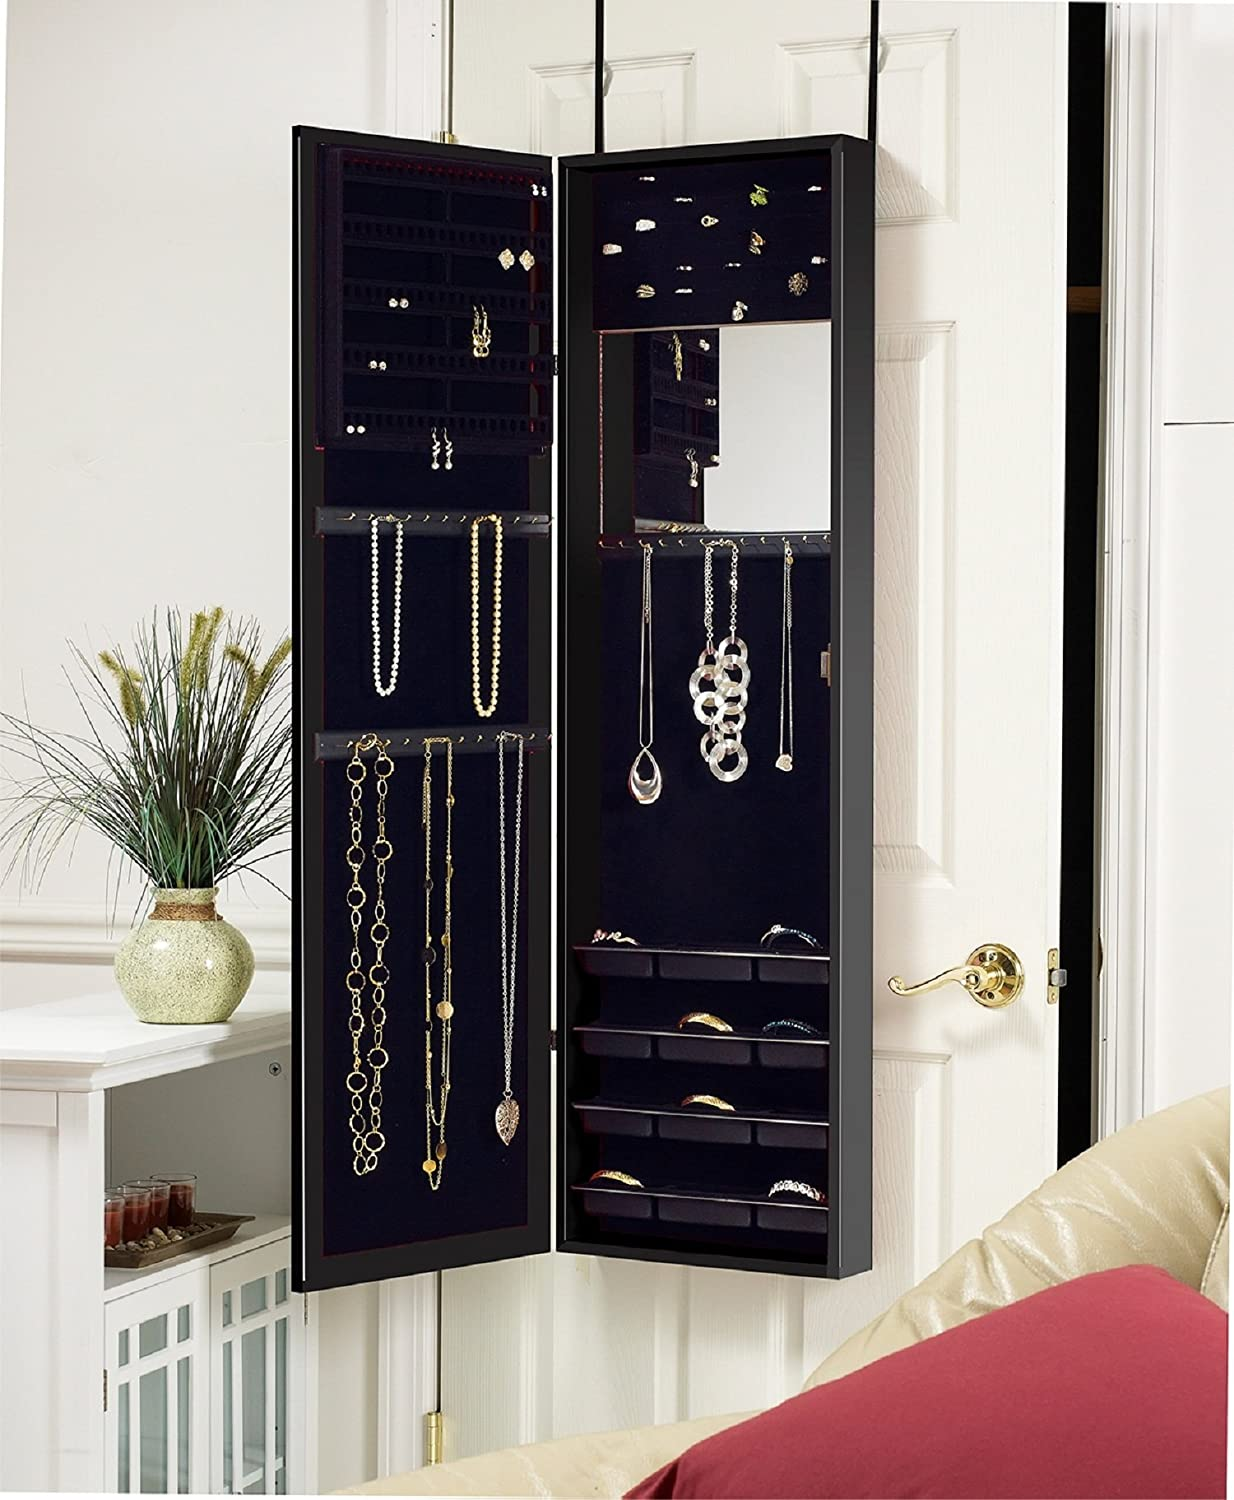 Amazon.com: Plaza Astoria Wall/Door-Mount Jewelry Armoire Black: Home \u0026 Kitchen & Amazon.com: Plaza Astoria Wall/Door-Mount Jewelry Armoire Black ... Pezcame.Com